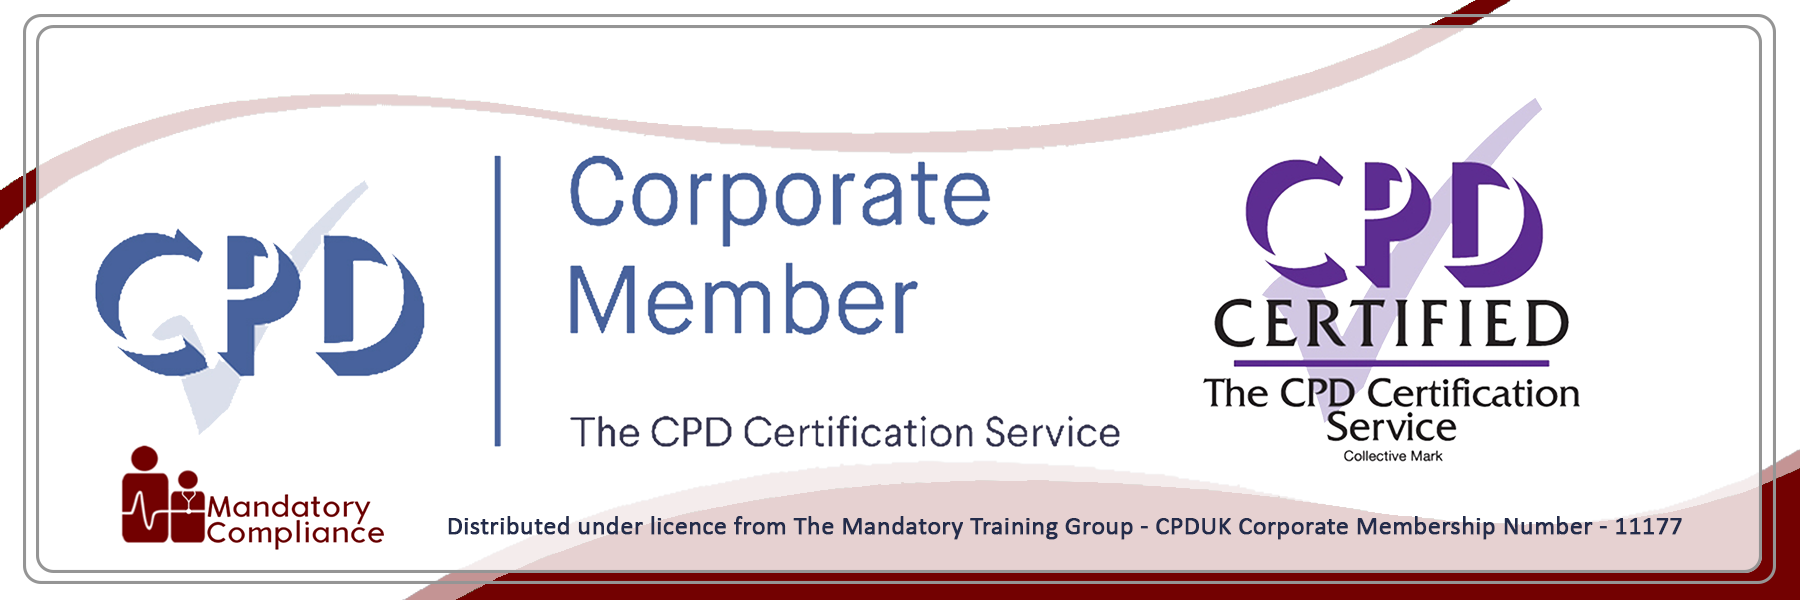 Induction of New Staff - Online Training Courses - Mandatory Compliance UK -